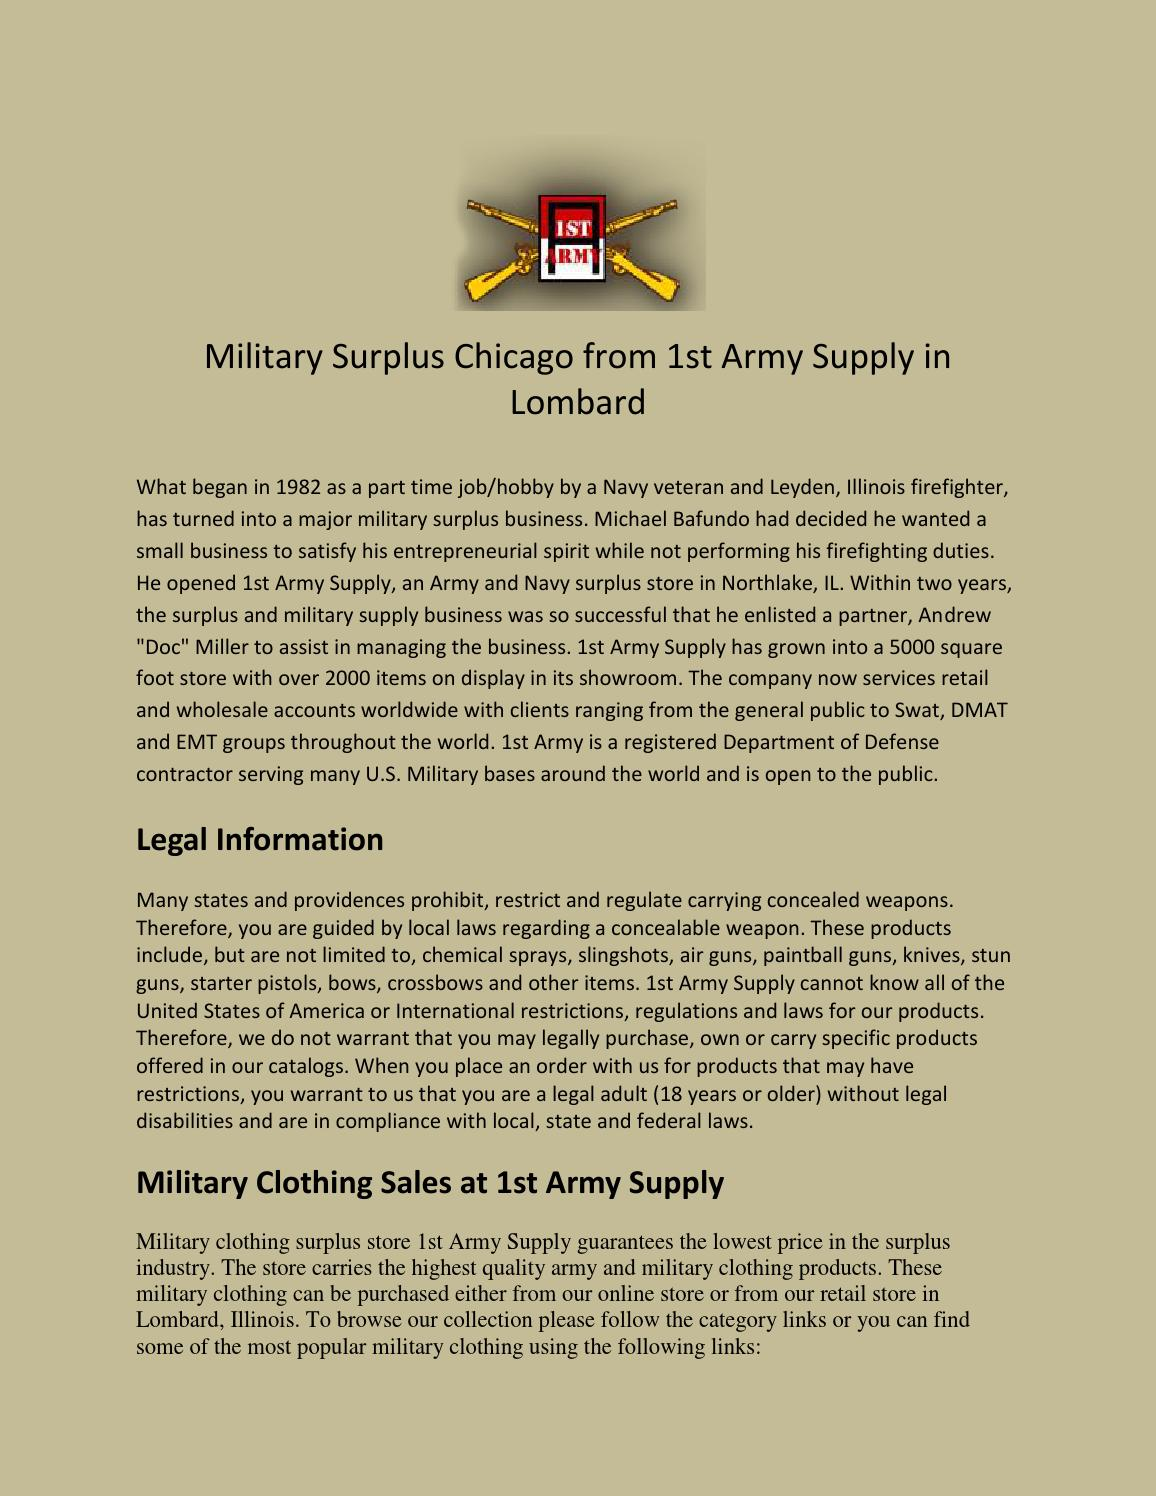 Military surplus chicago from 1st army supply in lombard by Army